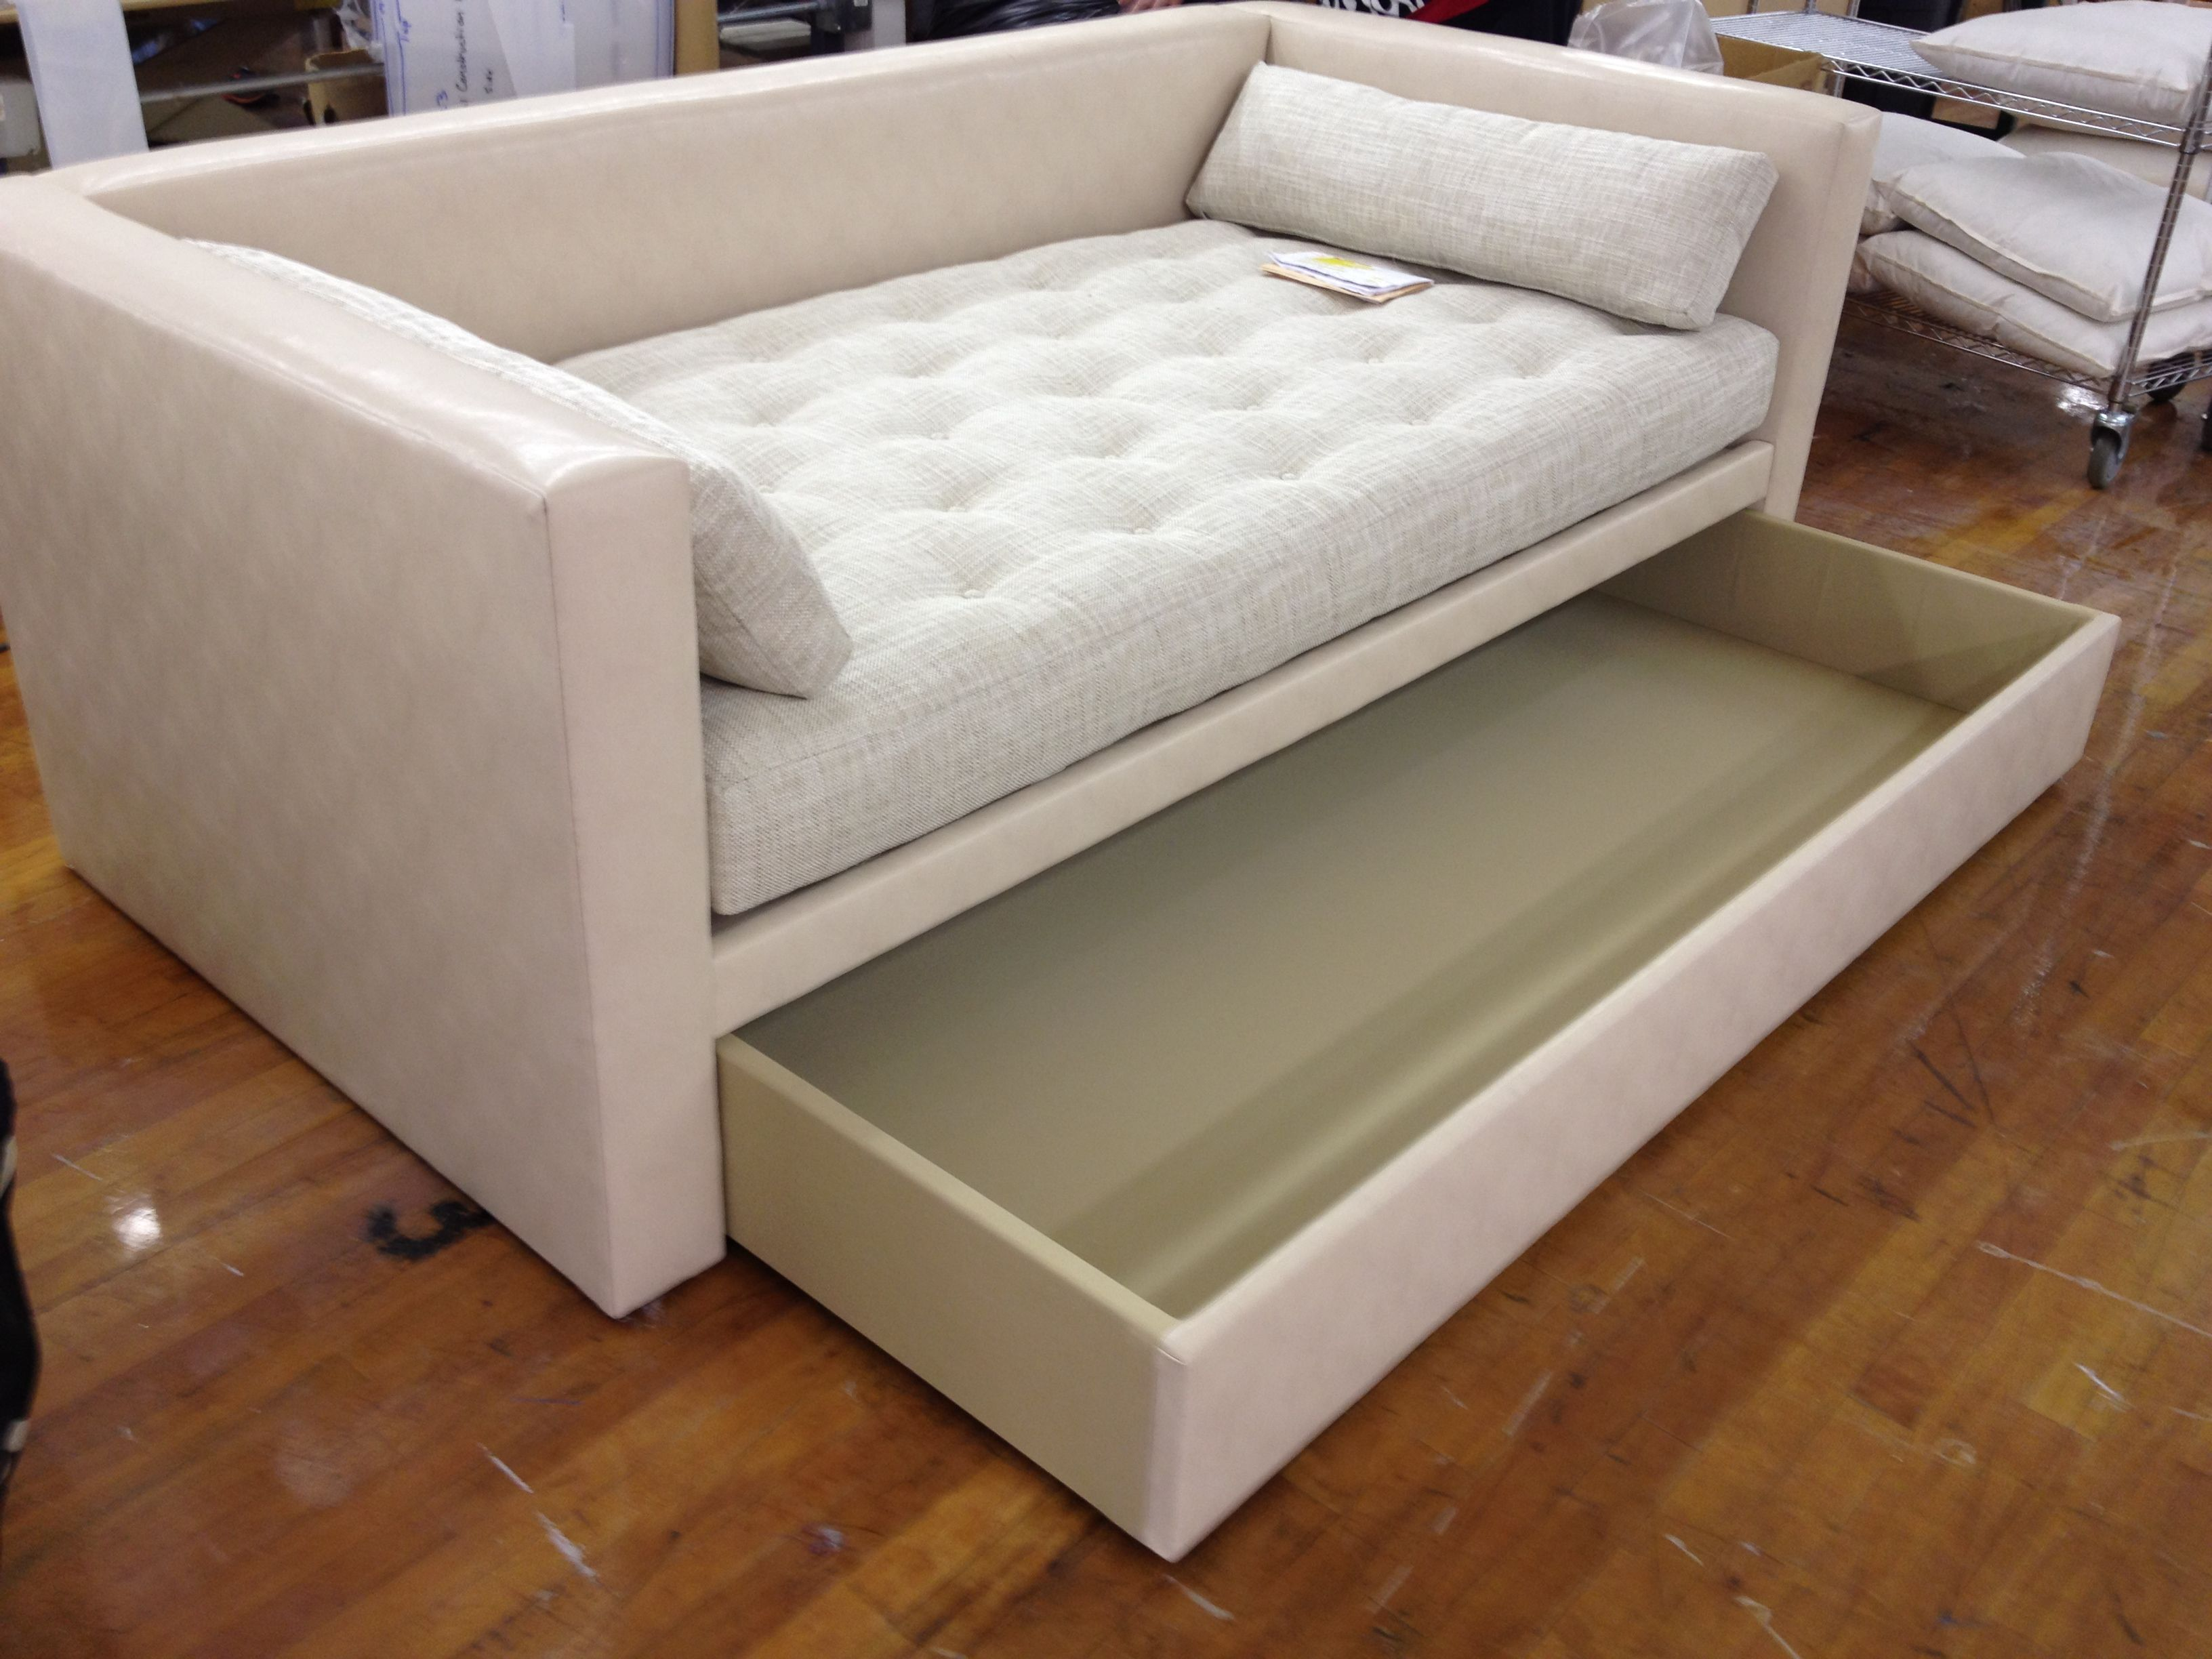 Trundle bed sofa porter m2m divan into a custom sized for Divan bed sets with headboard